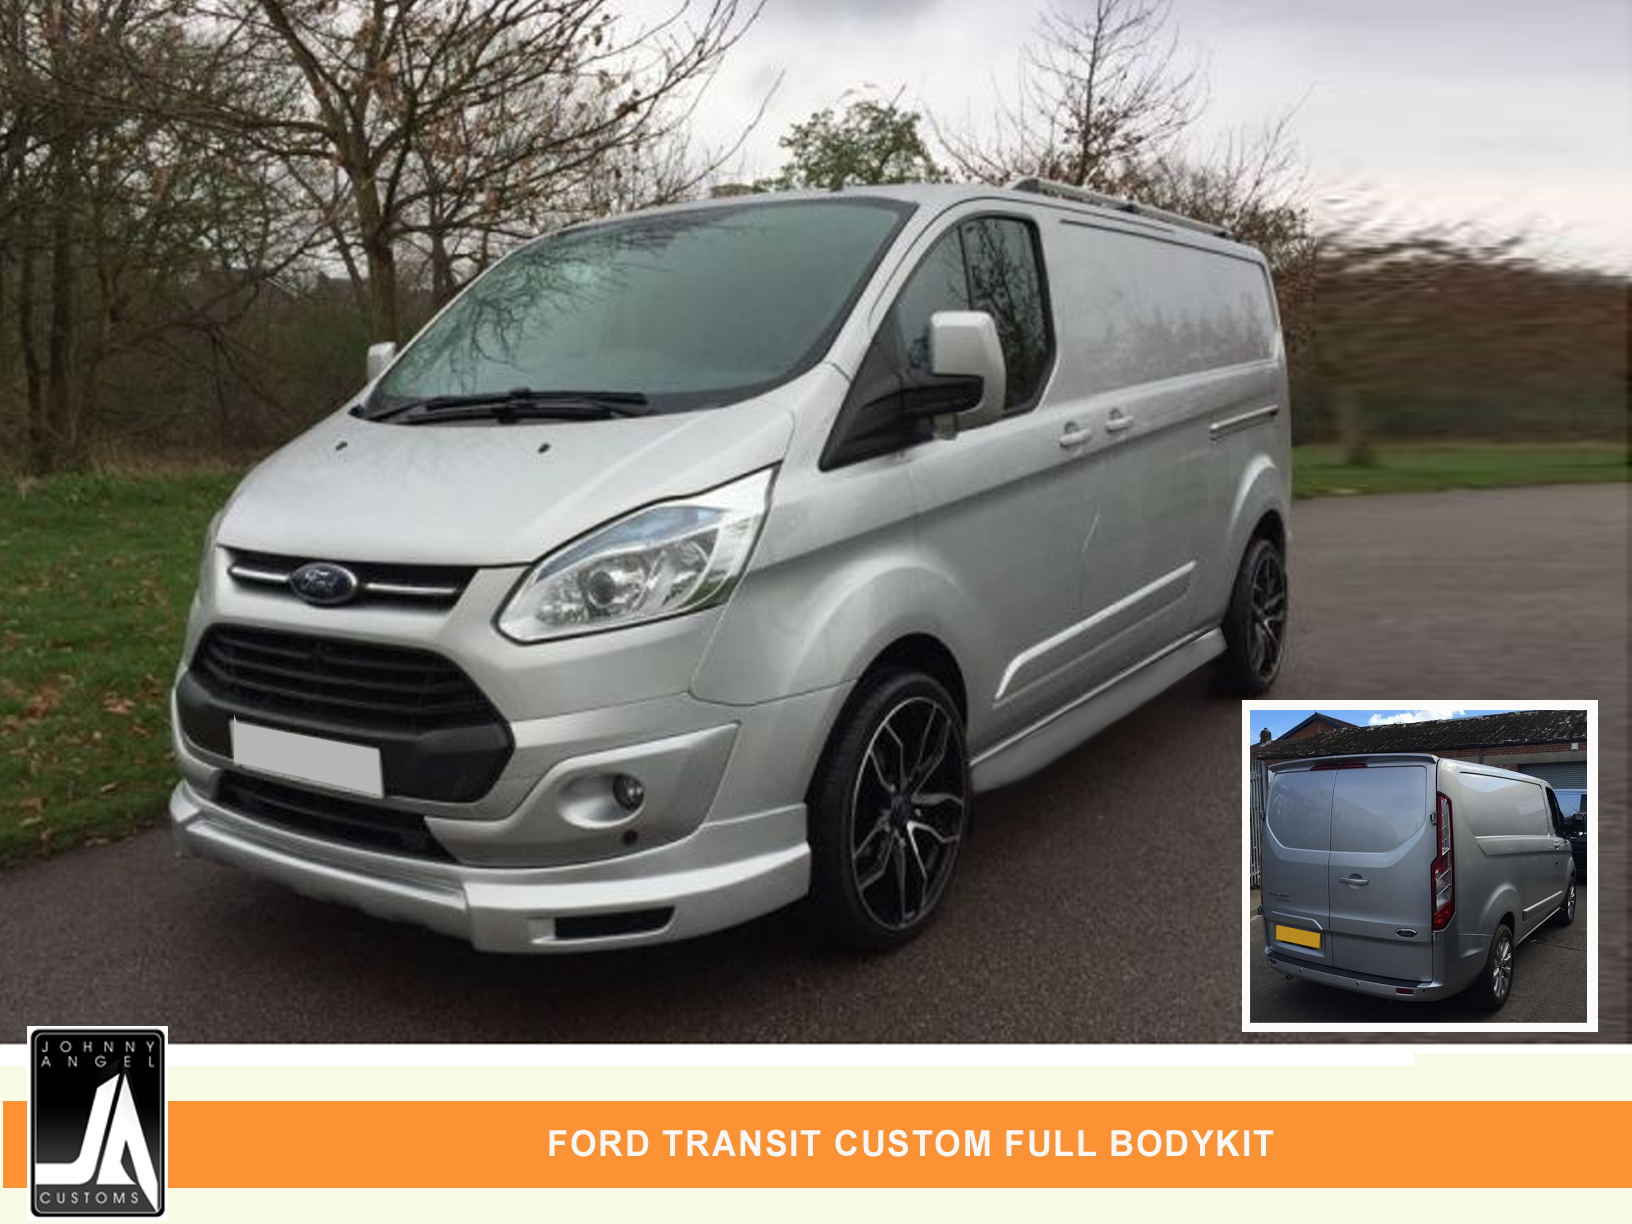 FORD TRANSIT CUSTOM FULL BODYKIT  By Johnny Angel Customs PIC 2